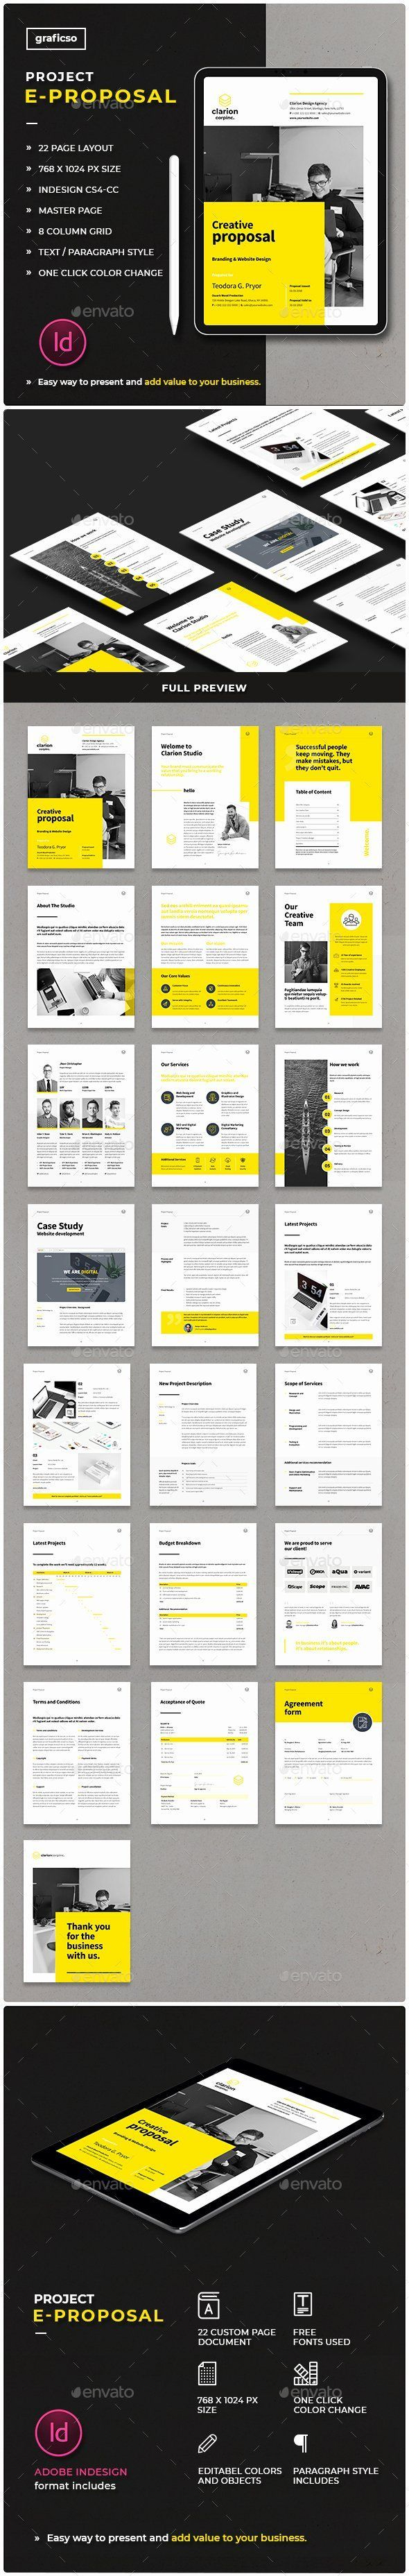 Freelance Web Design Quote Template Lovely E Publishing Templates From Graphicri En 2020